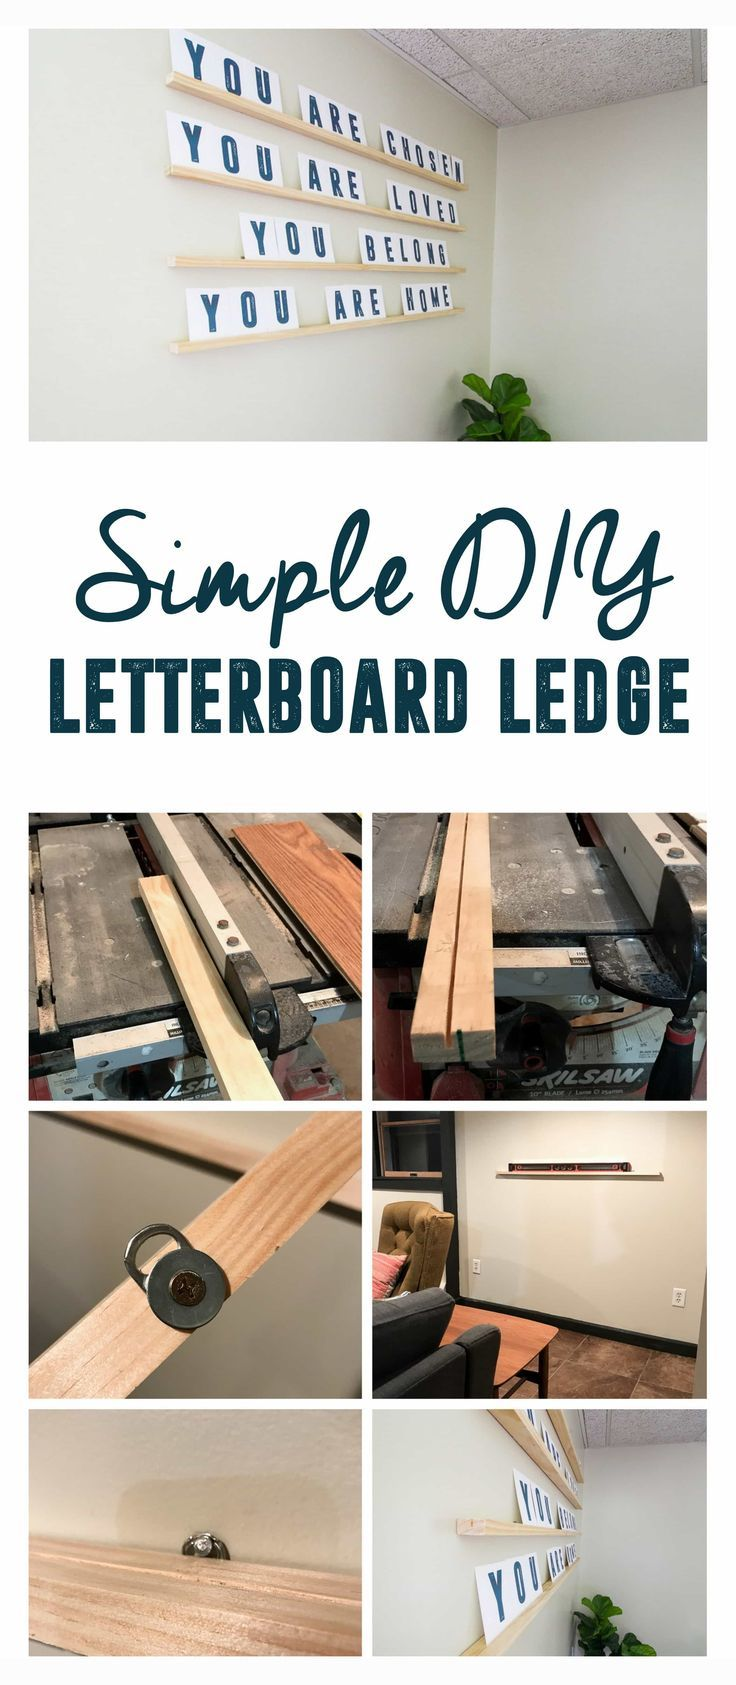 4 Simple Diy Letterboard Ledge Diy Letter Board Diy Letters Easy Diy